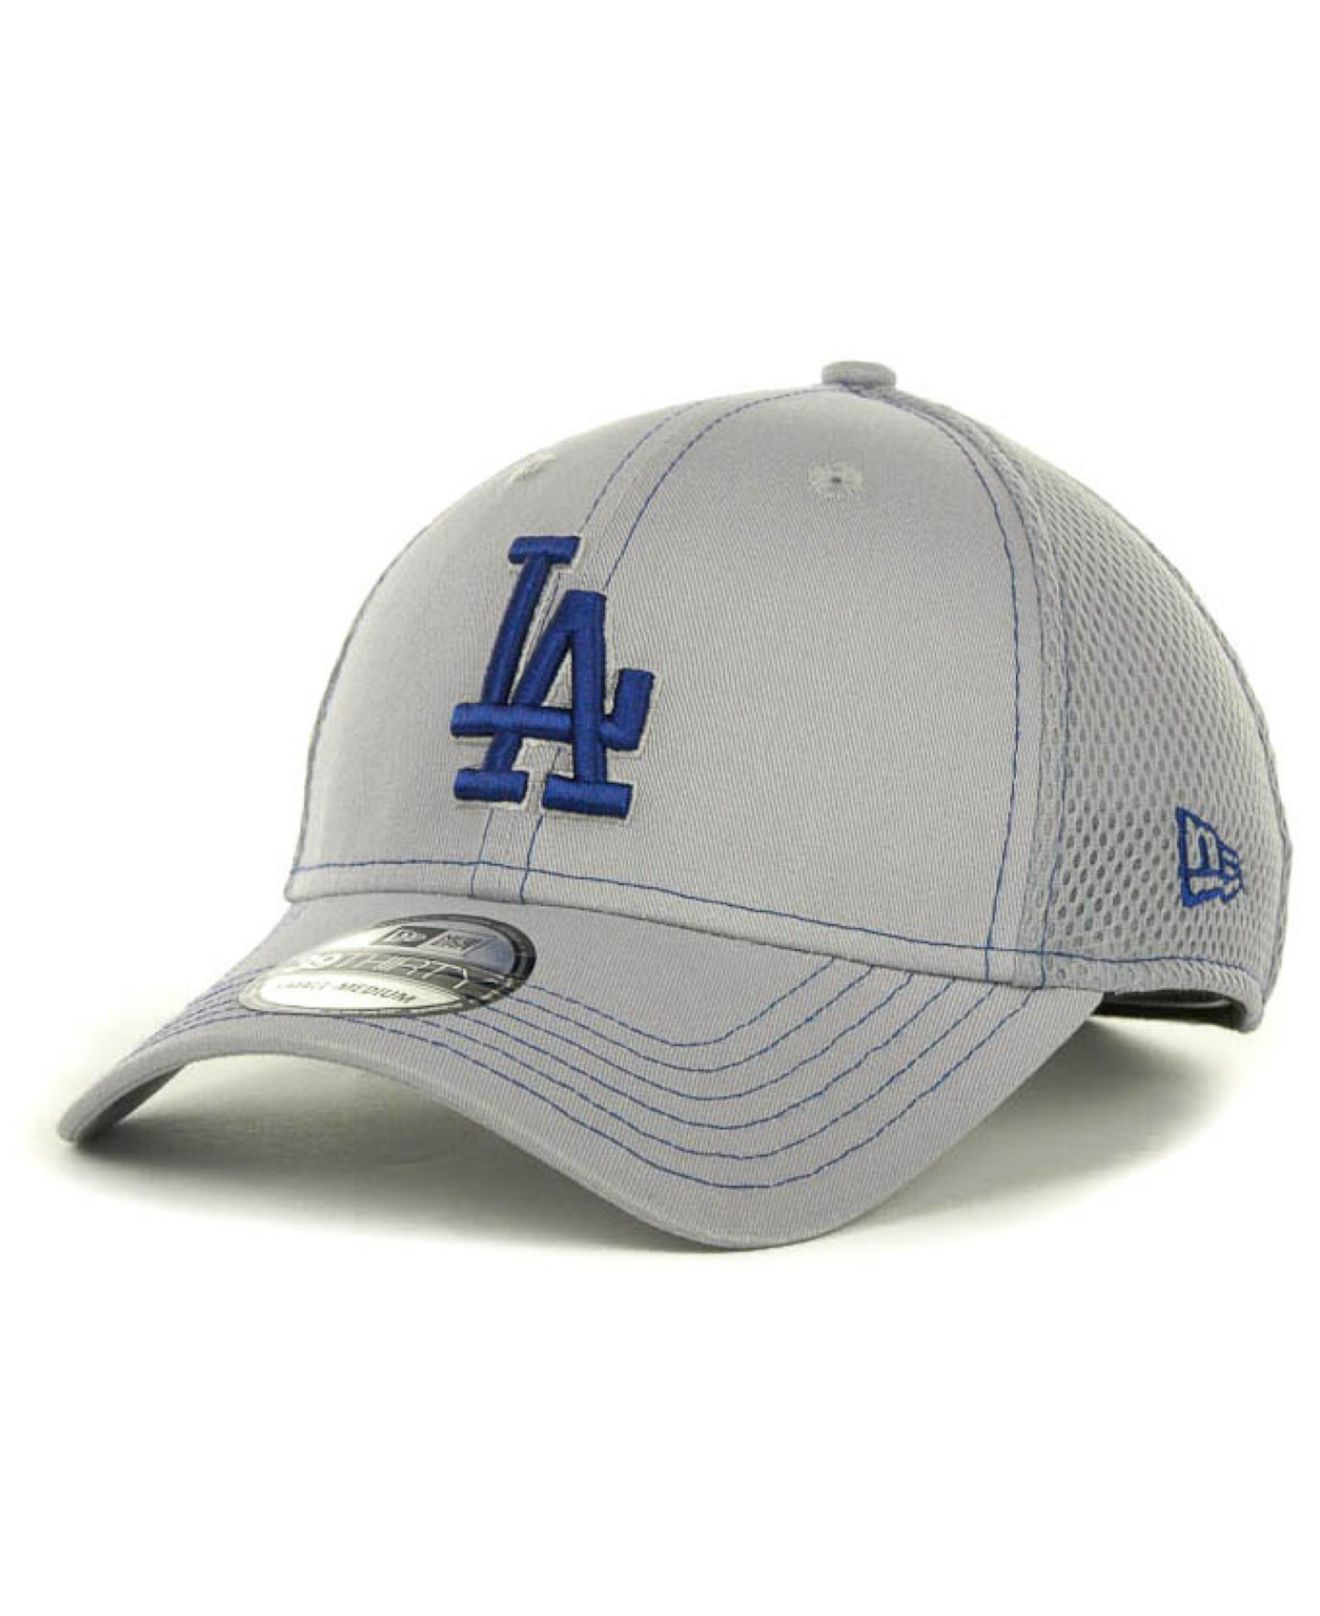 quality design 940ac d4ee3 ... discount code for lyst ktz los angeles dodgers gray neo 39thirty cap in  gray for men